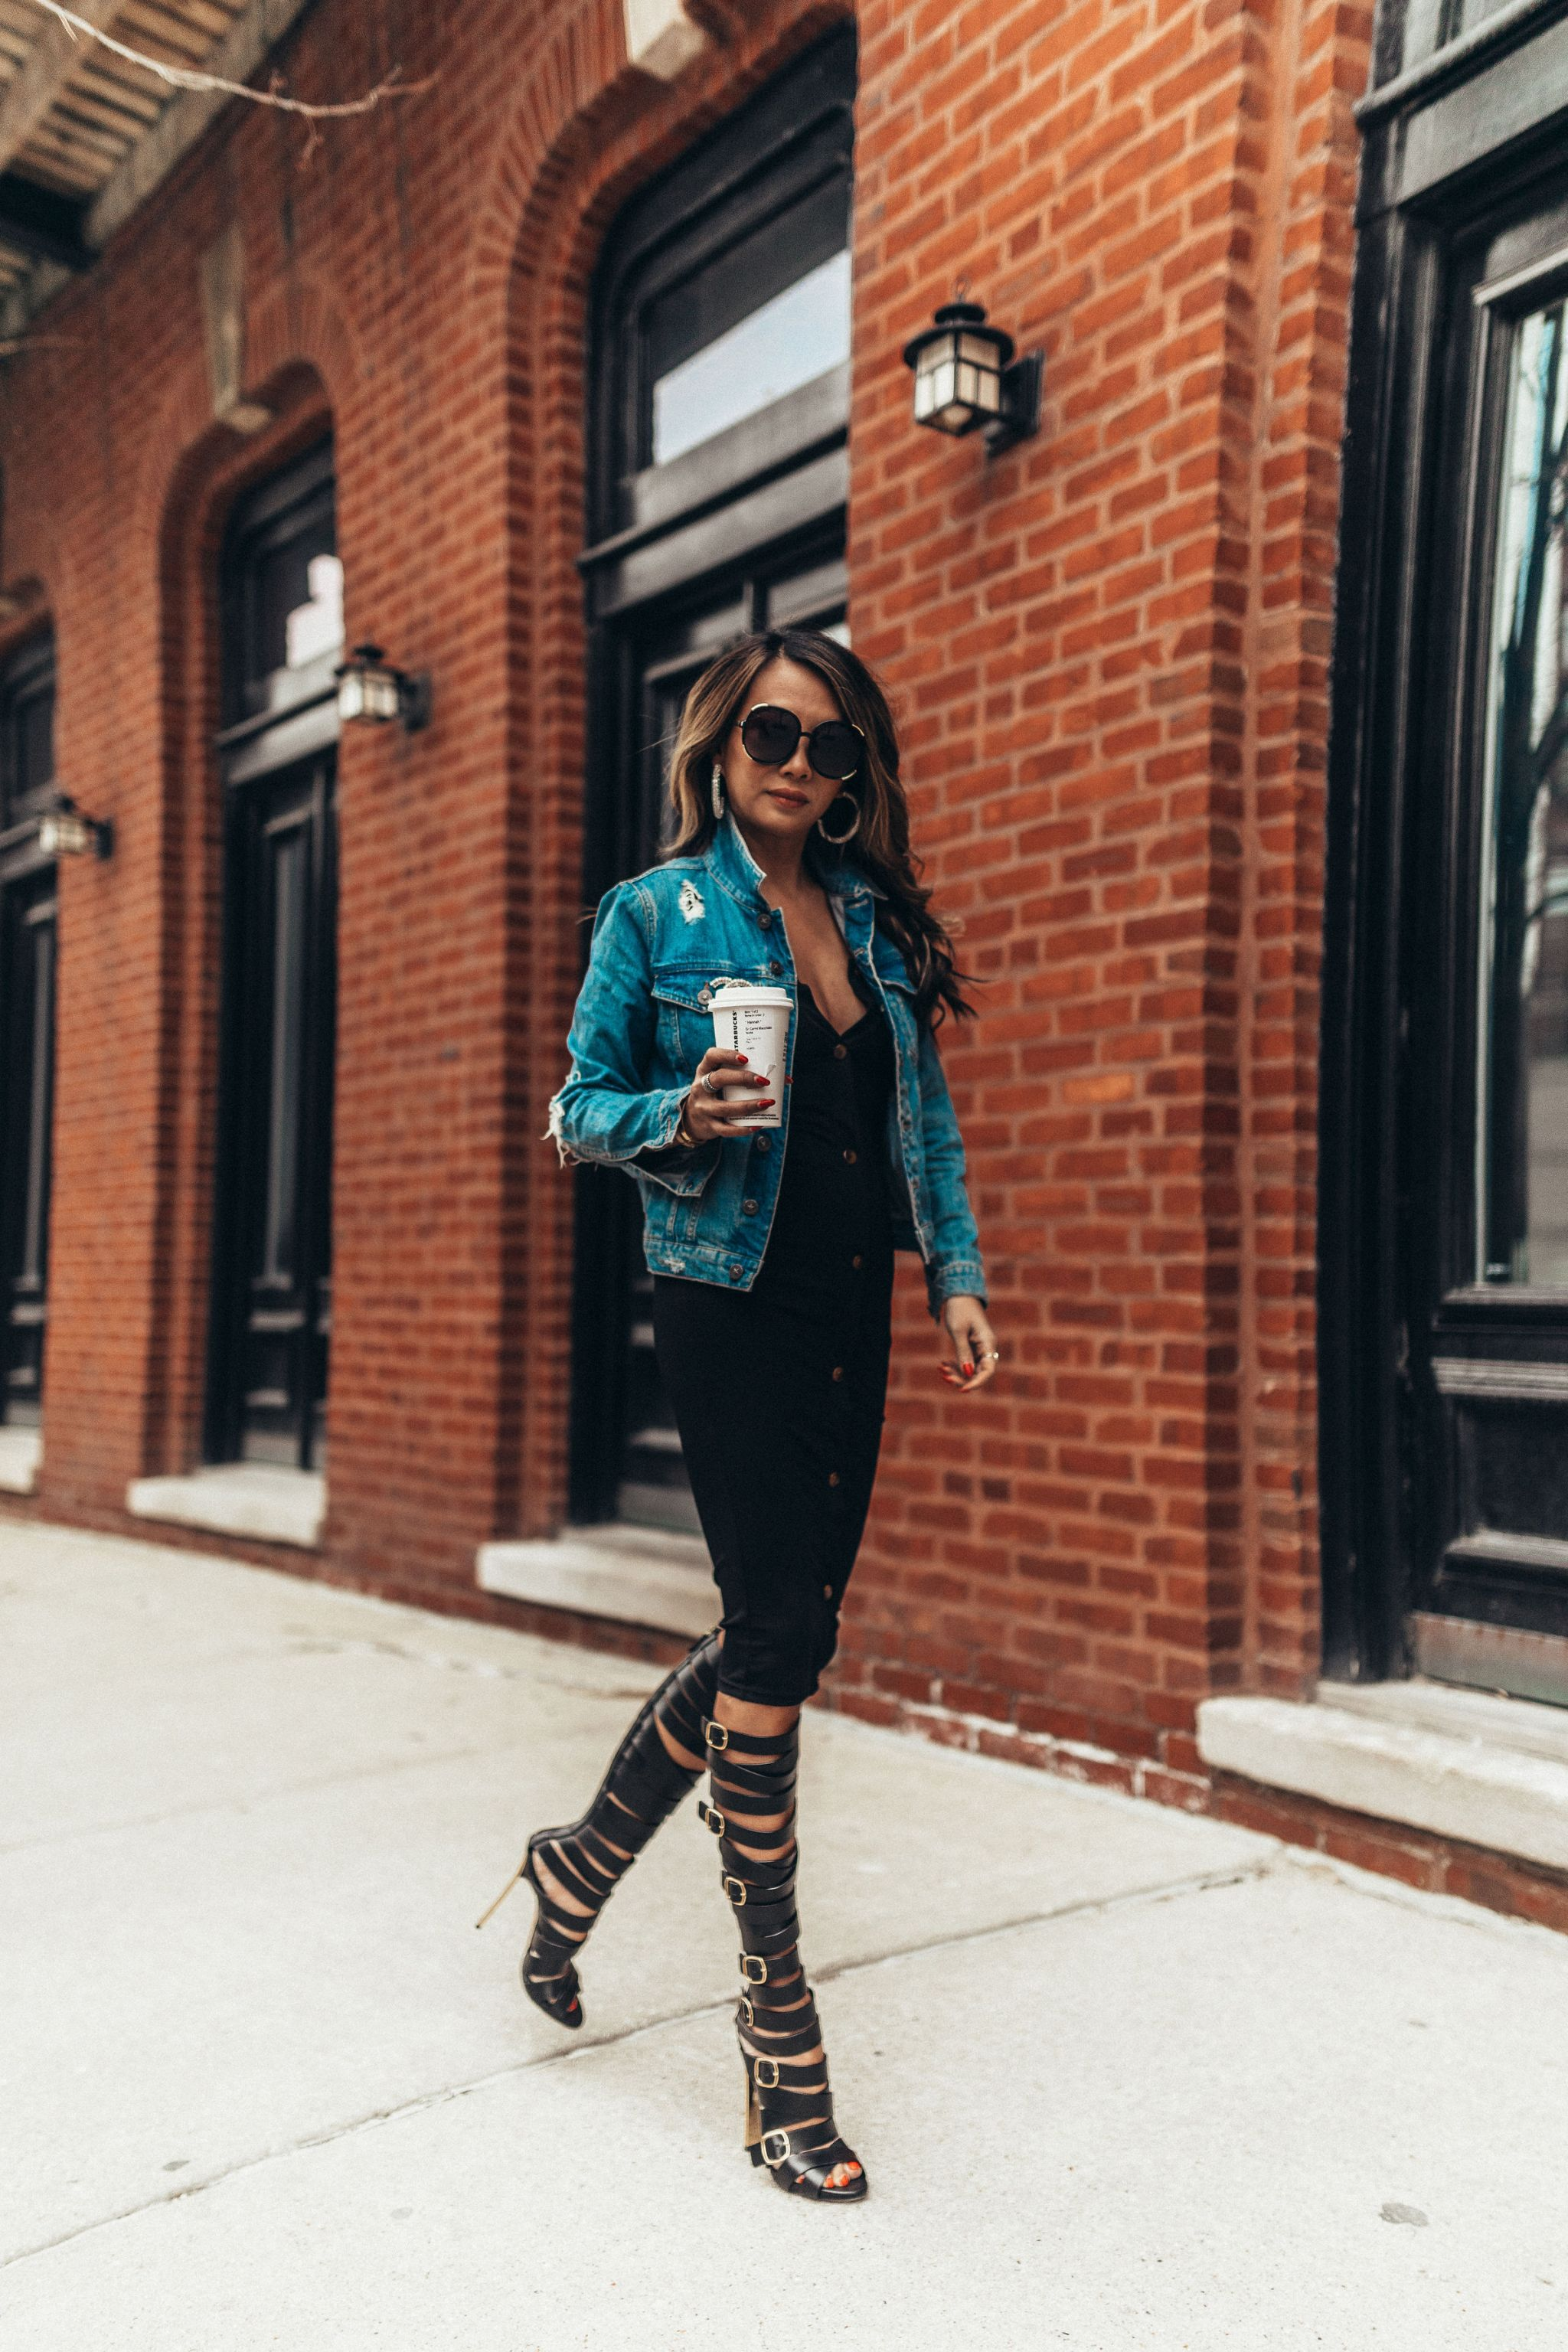 3 ways to style a little black dress, 1 dress 3 ways, how to style a black dress, how to dress up a black midi dress, outfit ideas, fashion blogger, style blogger, street style, how to style a dress multiple ways, denim jacket outfit ideas, black dress outfit ideas